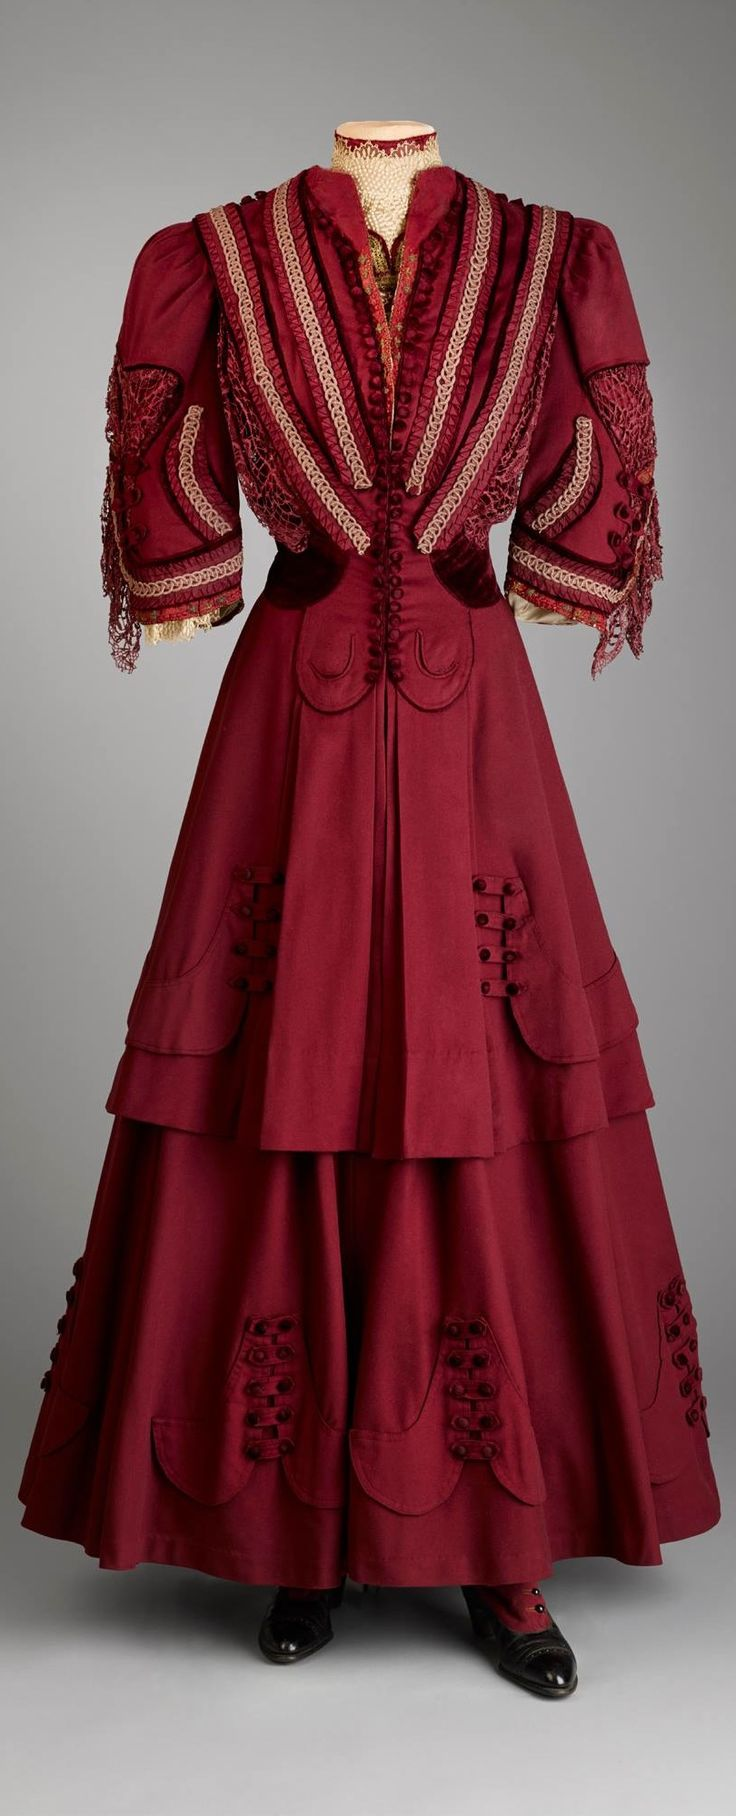 Three-piece, maroon wool suit with details in satin and lace, made for Marjorie Merriweather Post at the department store B. Altman & Co. for her to wear while traveling by train to her honeymoon in Hot Springs, Virginia, in 1905. Photo courtesy of Hillwood Estate, Museum & Gardens on Facebook.